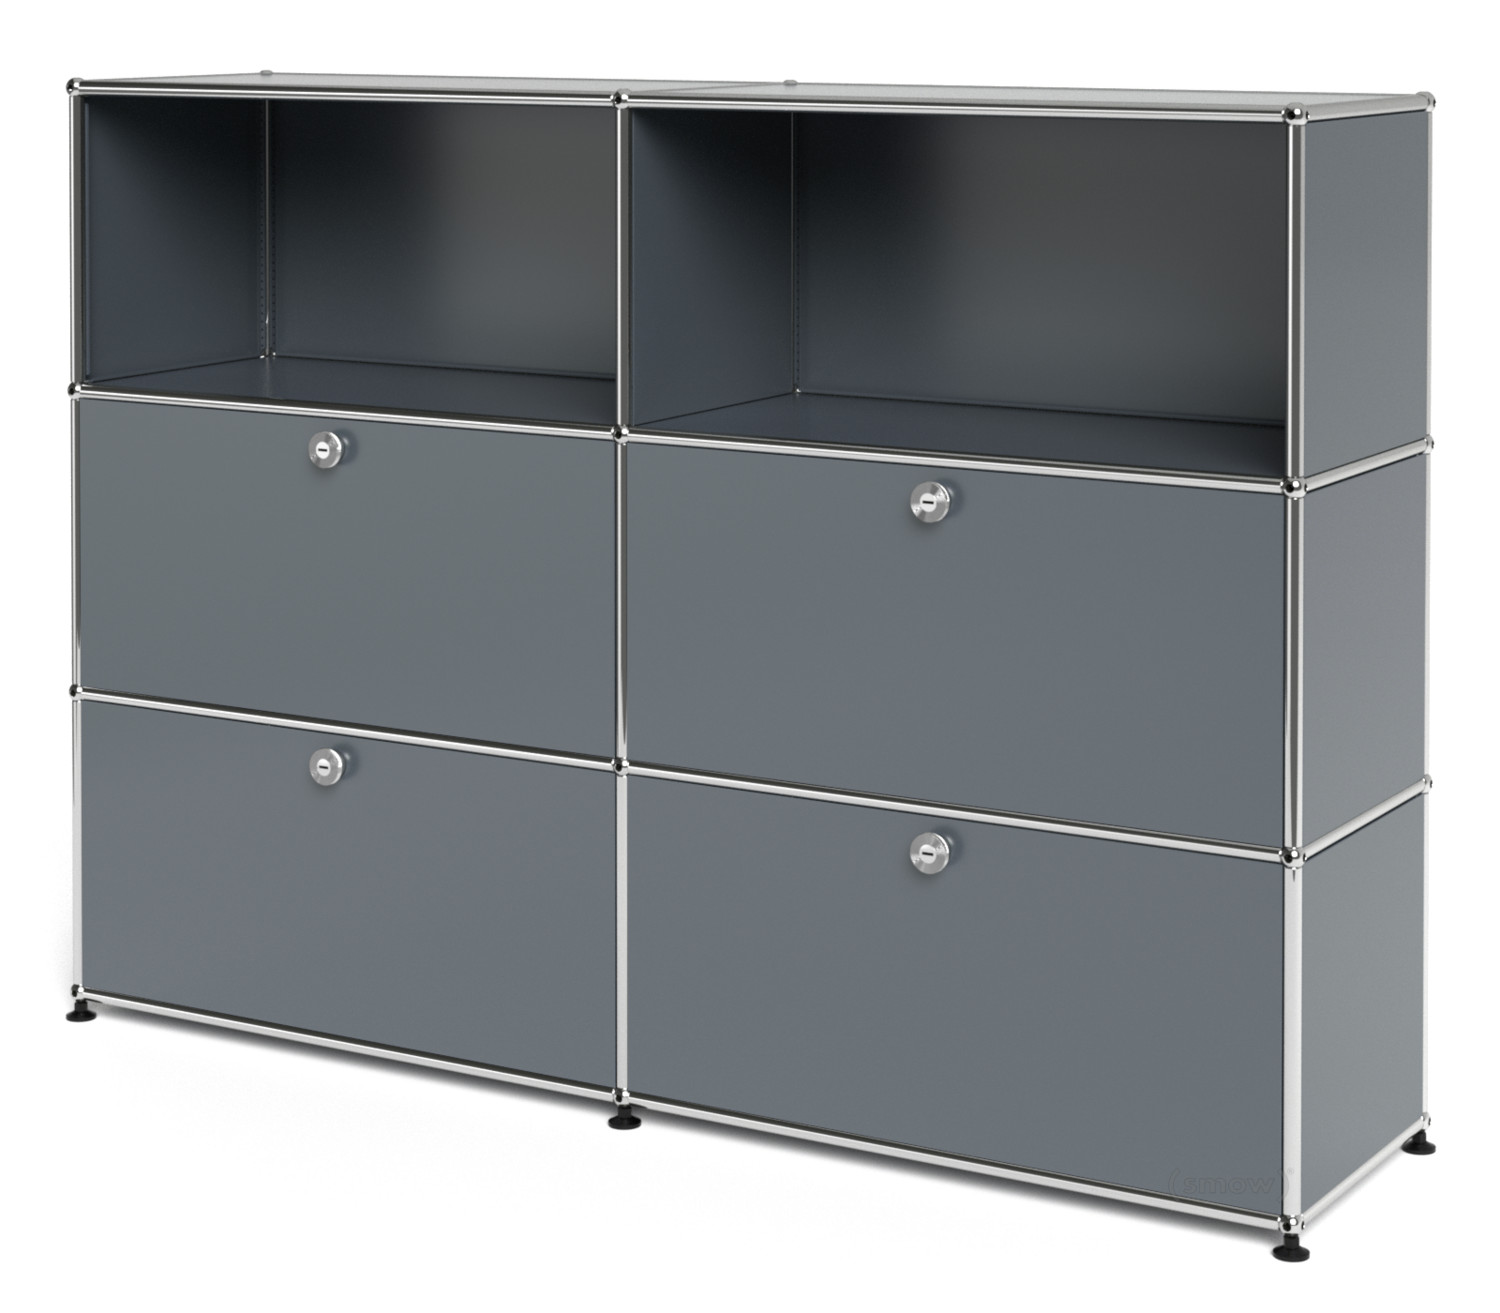 usm haller highboard l mit 4 klappen mittelgrau ral 7005 von fritz haller paul sch rer. Black Bedroom Furniture Sets. Home Design Ideas